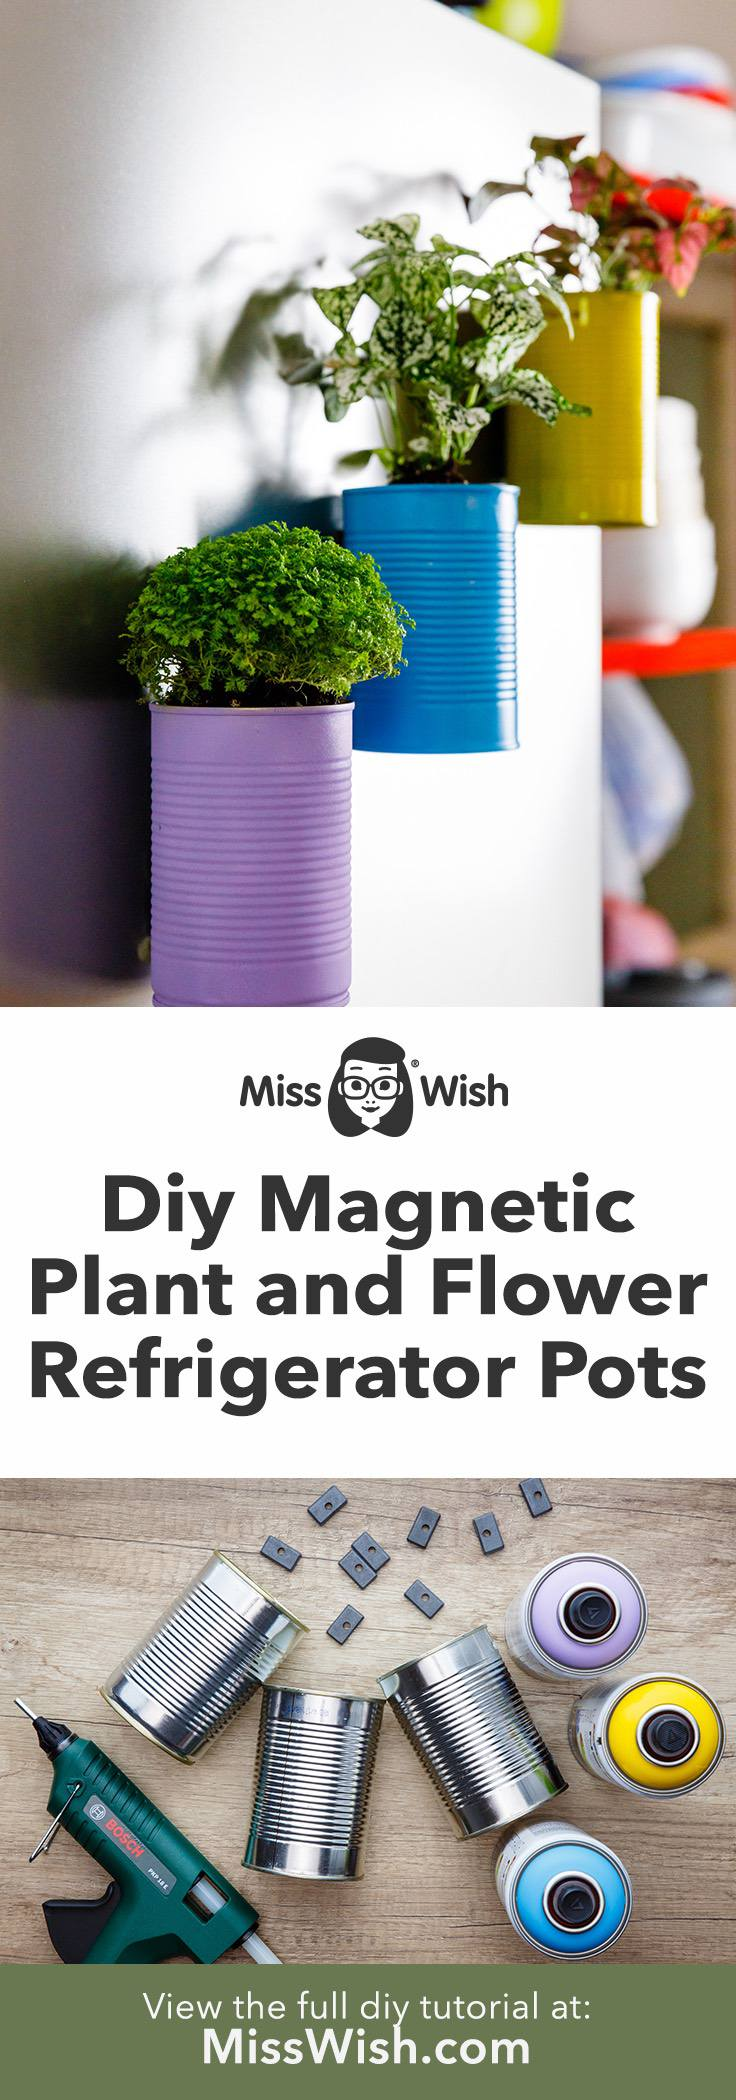 Diy Magnetic Plant and Flower Pots for the Refrigerator